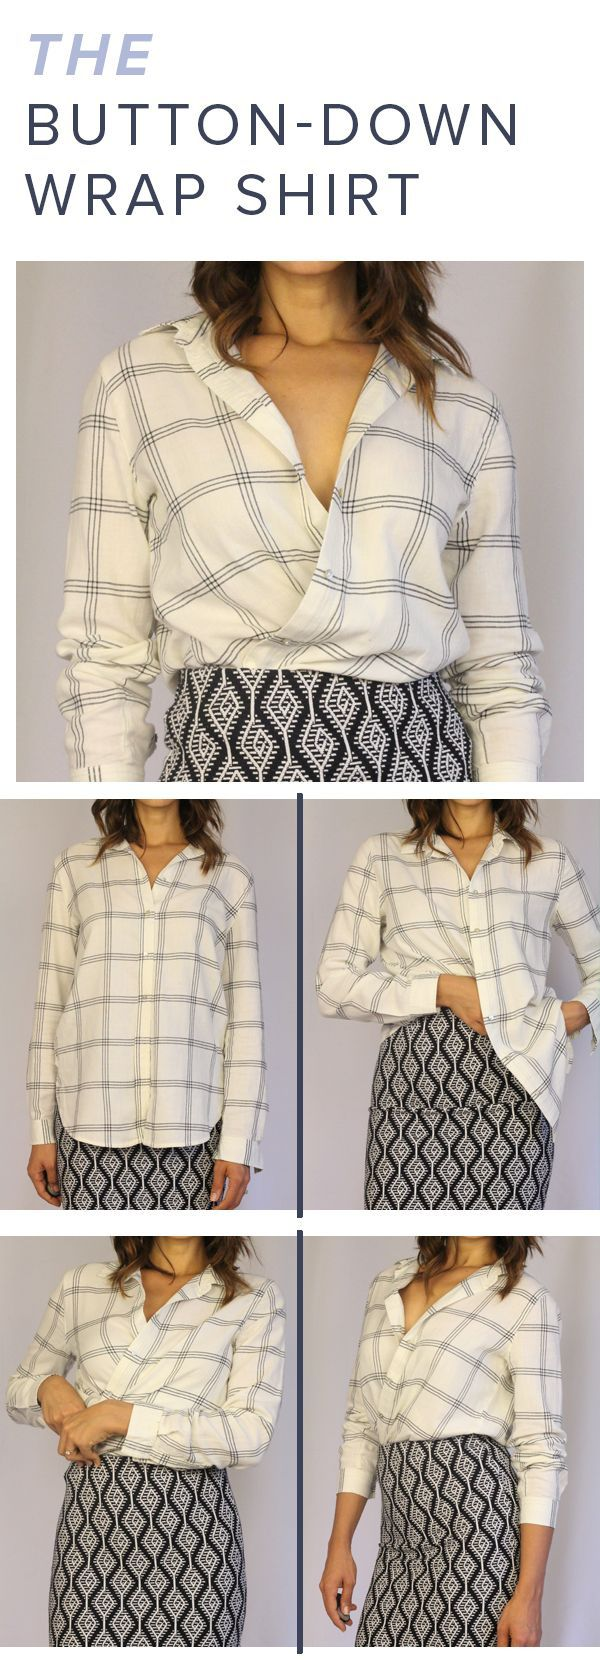 Flannel into dress  Are you getting tired of wearing the same oversized flannel or